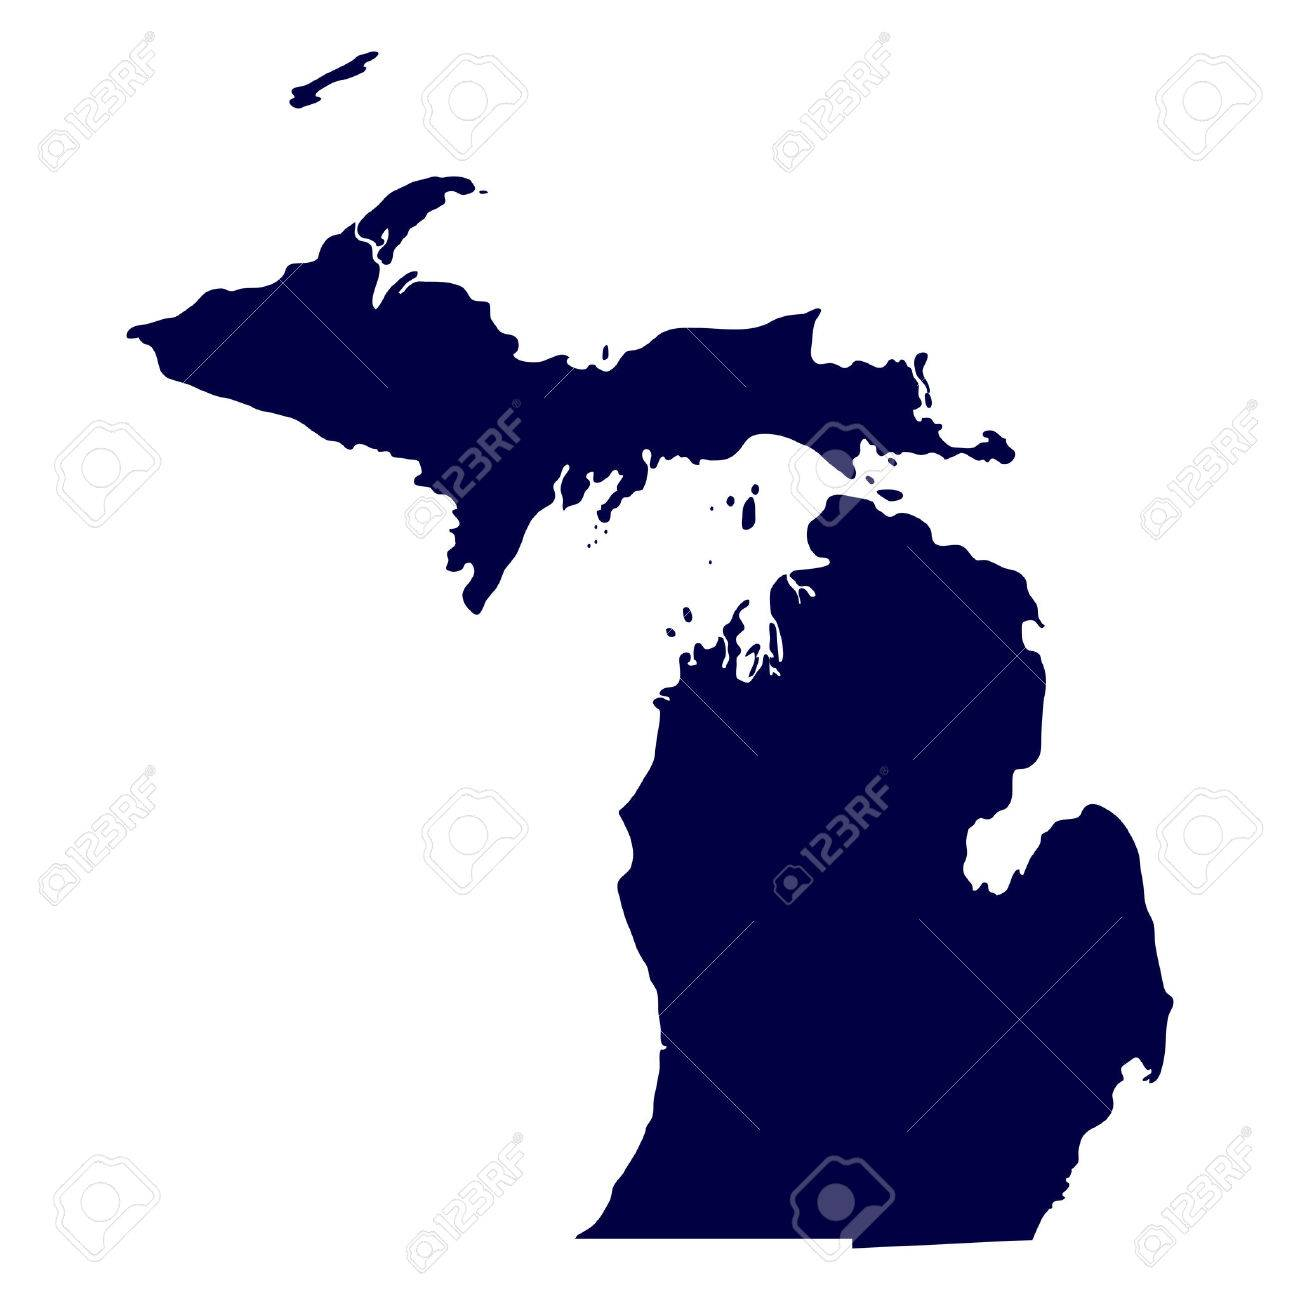 Map Of The U S State Of Michigan Royalty Free Cliparts Vectors